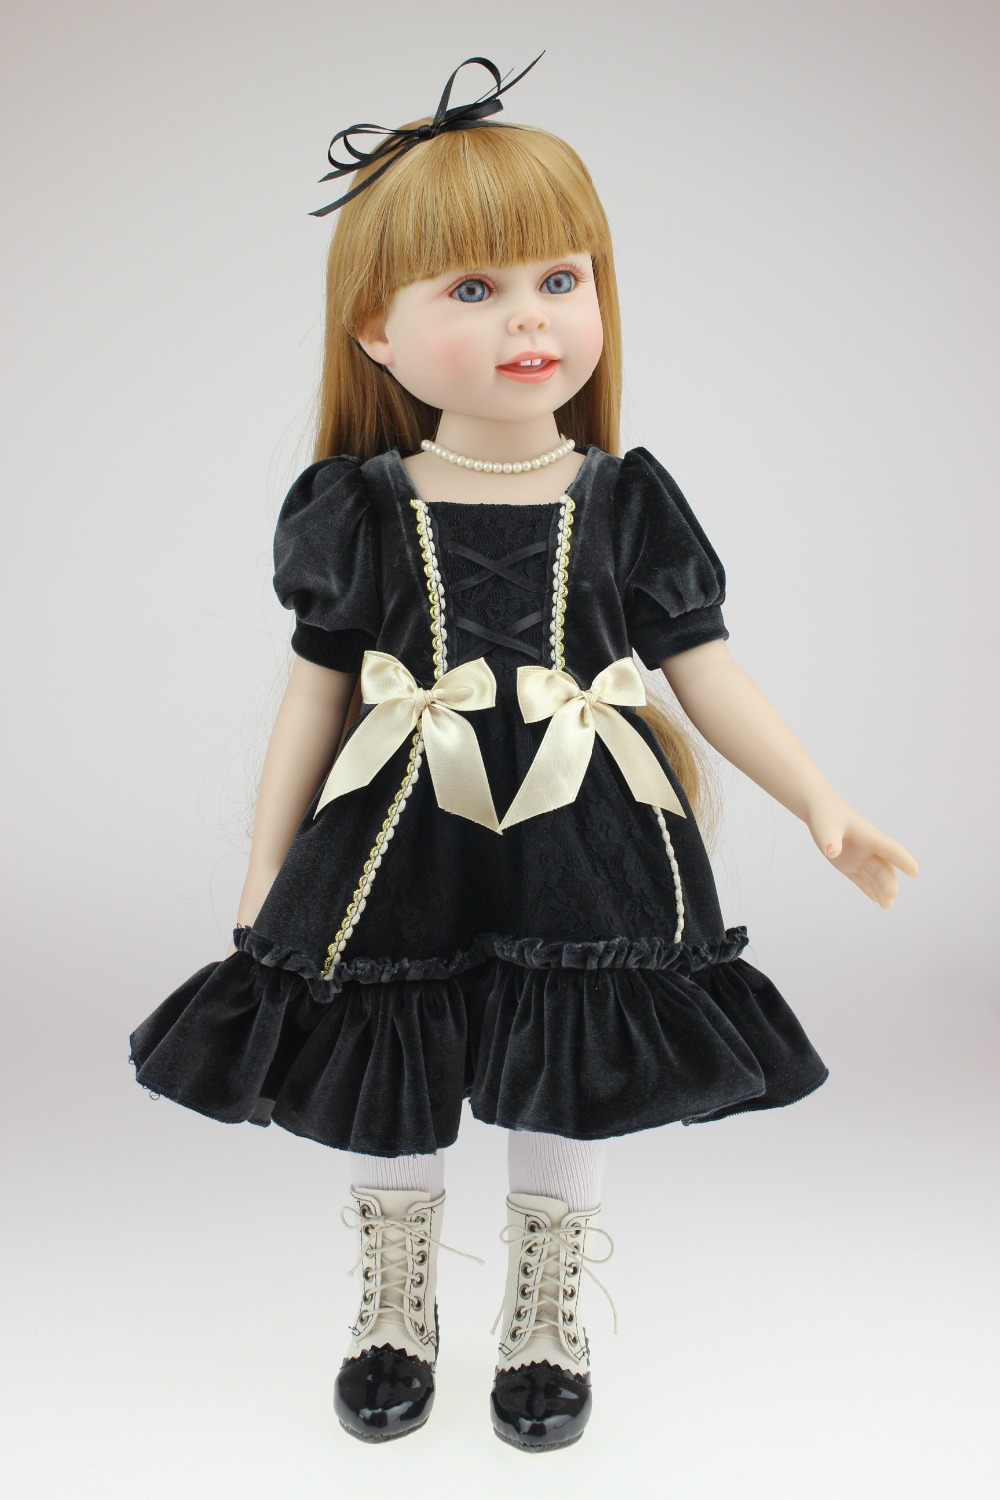 45 cm Silicone Reborn Baby Dolls Real Mini Love Doll Boy Girl Reborn babies black dress kids gift toys(China (Mainland))